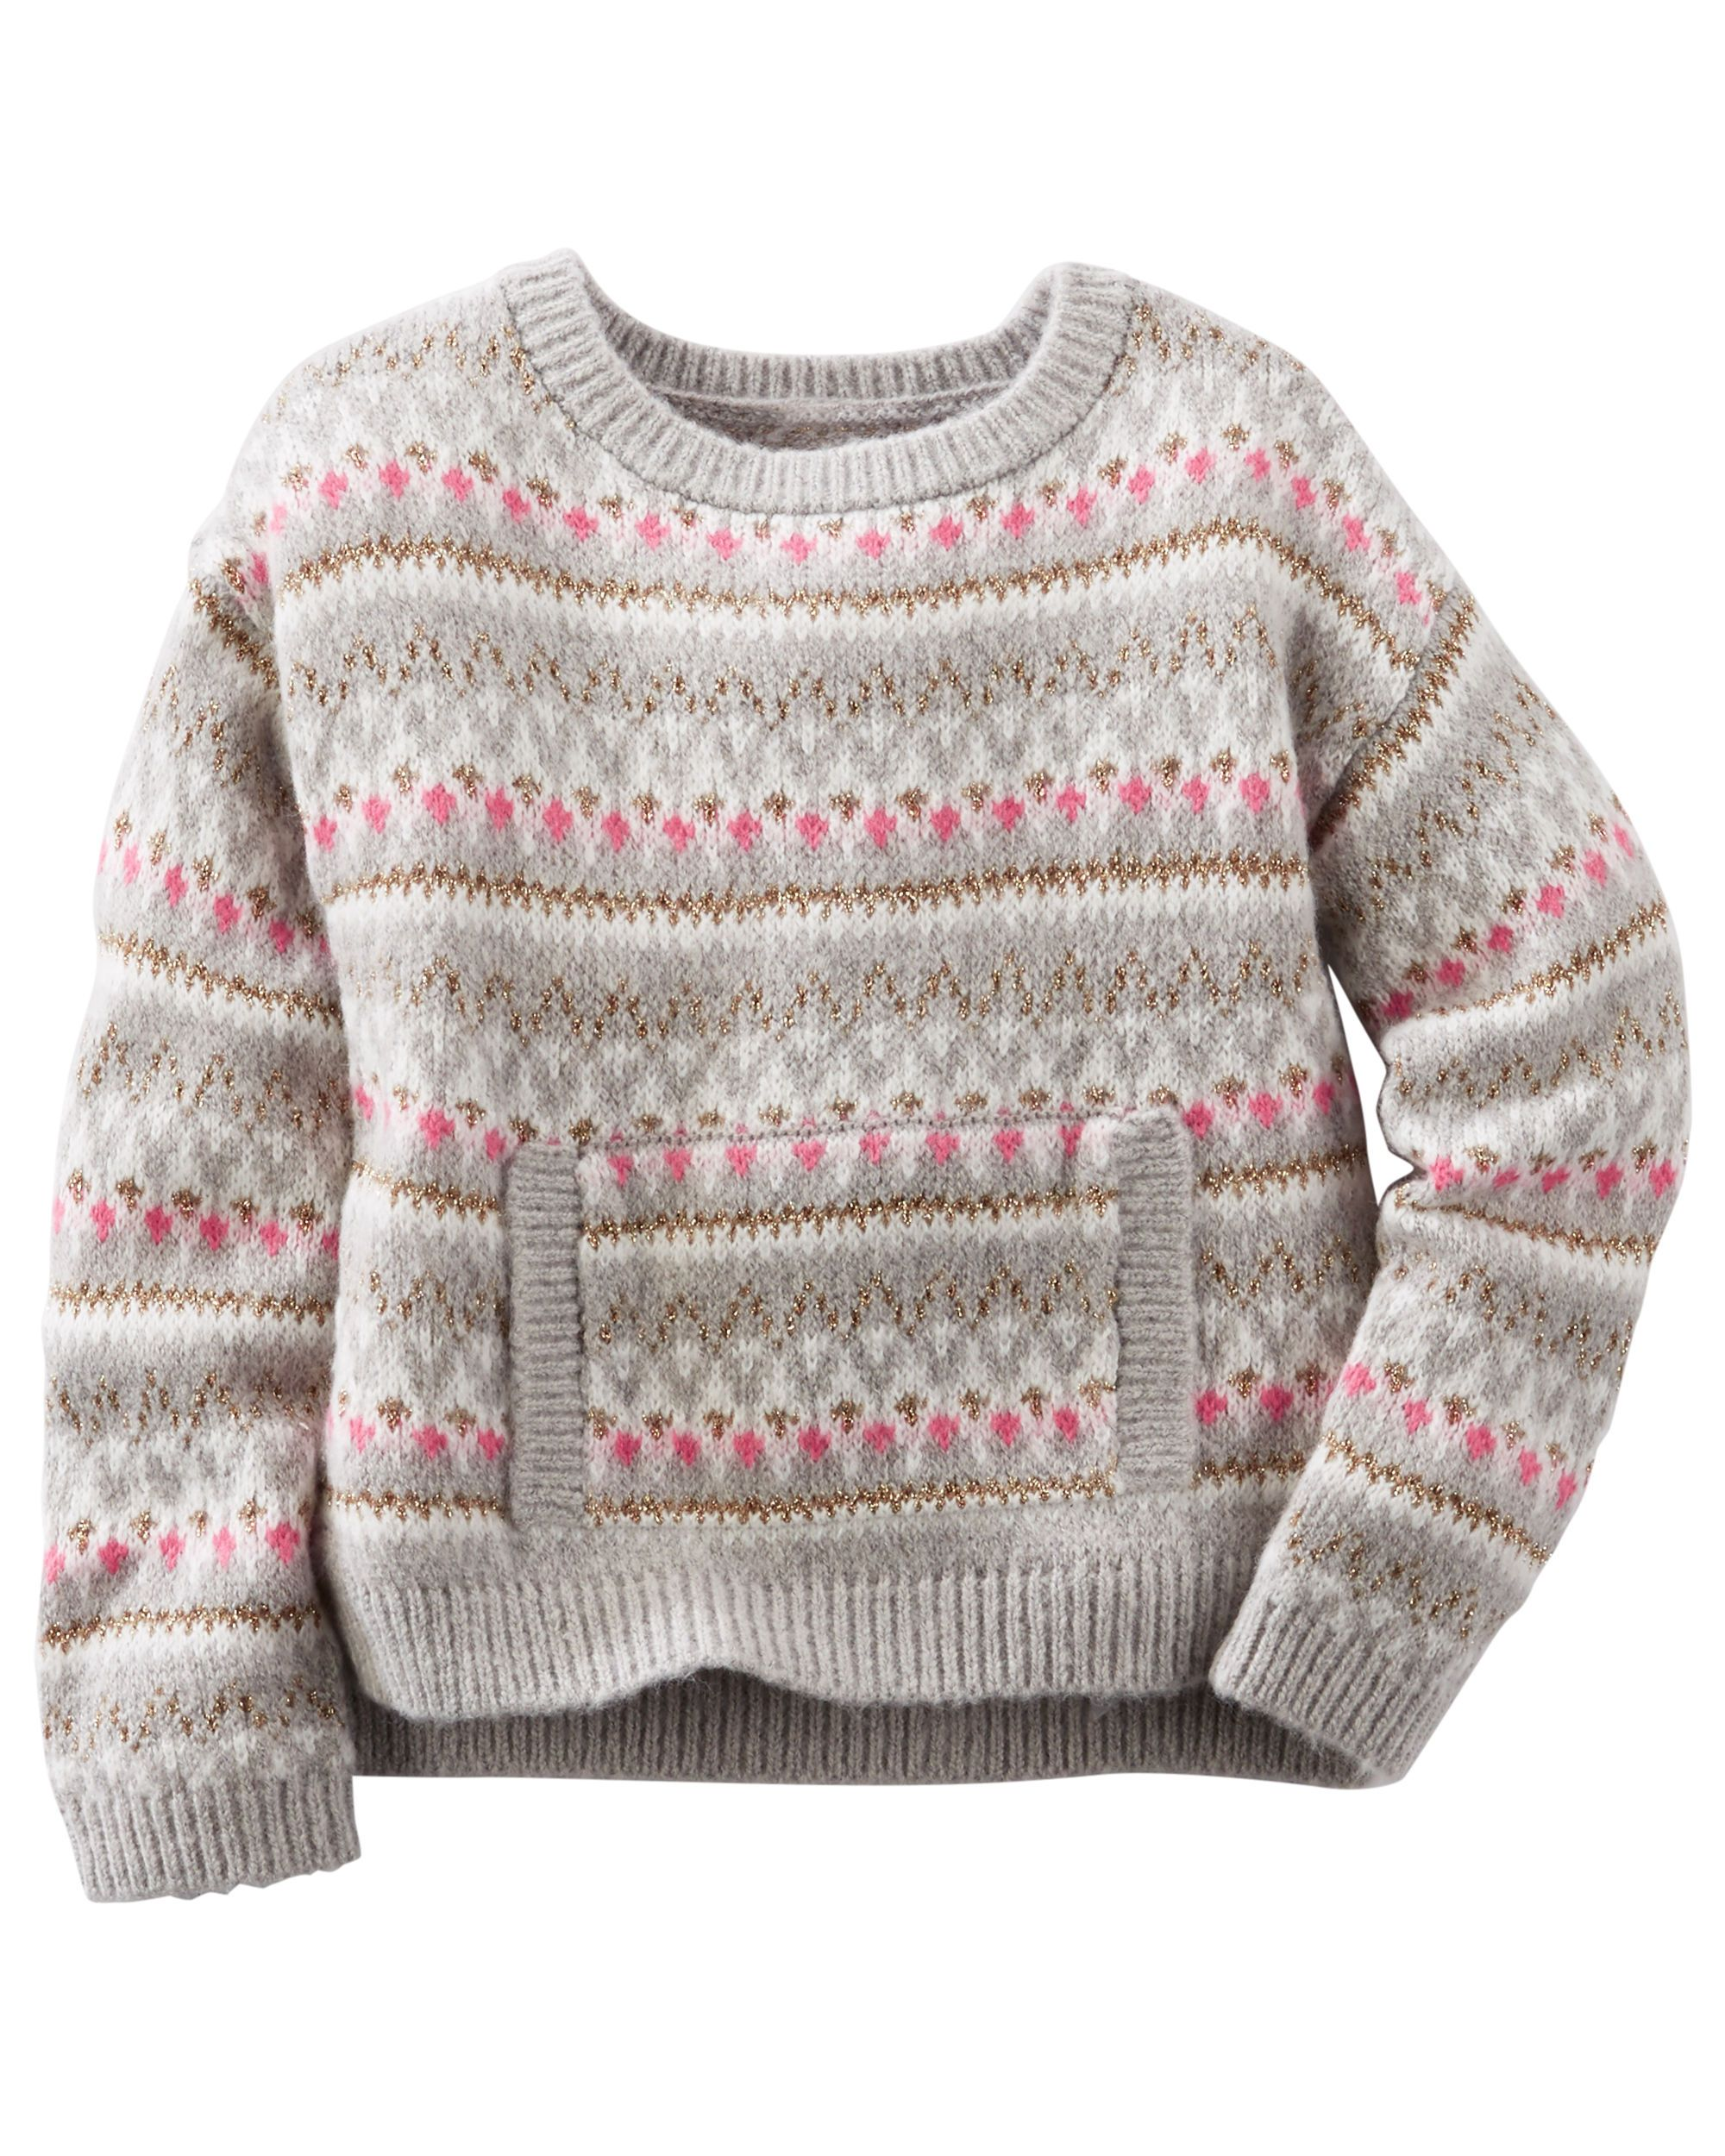 a528a47e3 Toddler Girl SPARKLE FAIR ISLE SWEATER